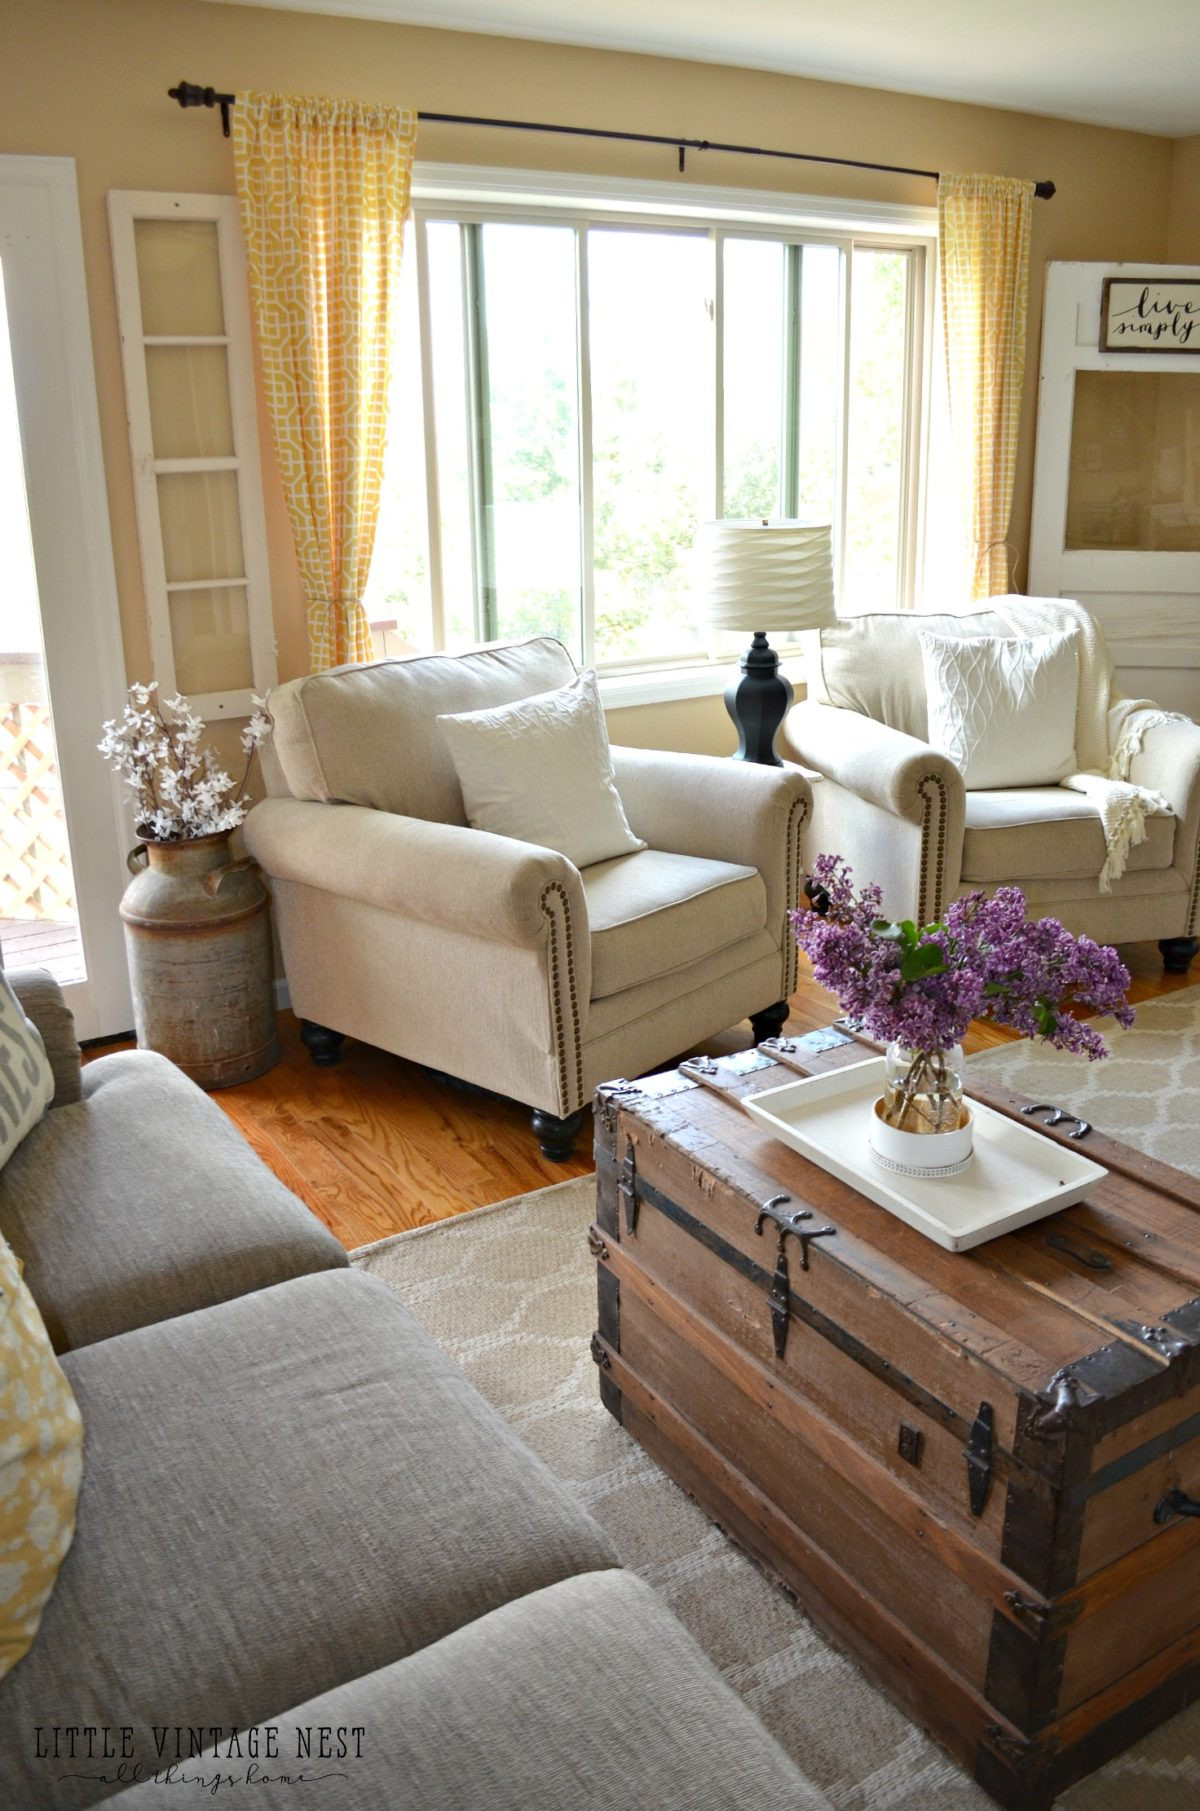 Best ideas about Farmhouse Style Living Room Furniture . Save or Pin How I Transitioned to Farmhouse Style Little Vintage Nest Now.